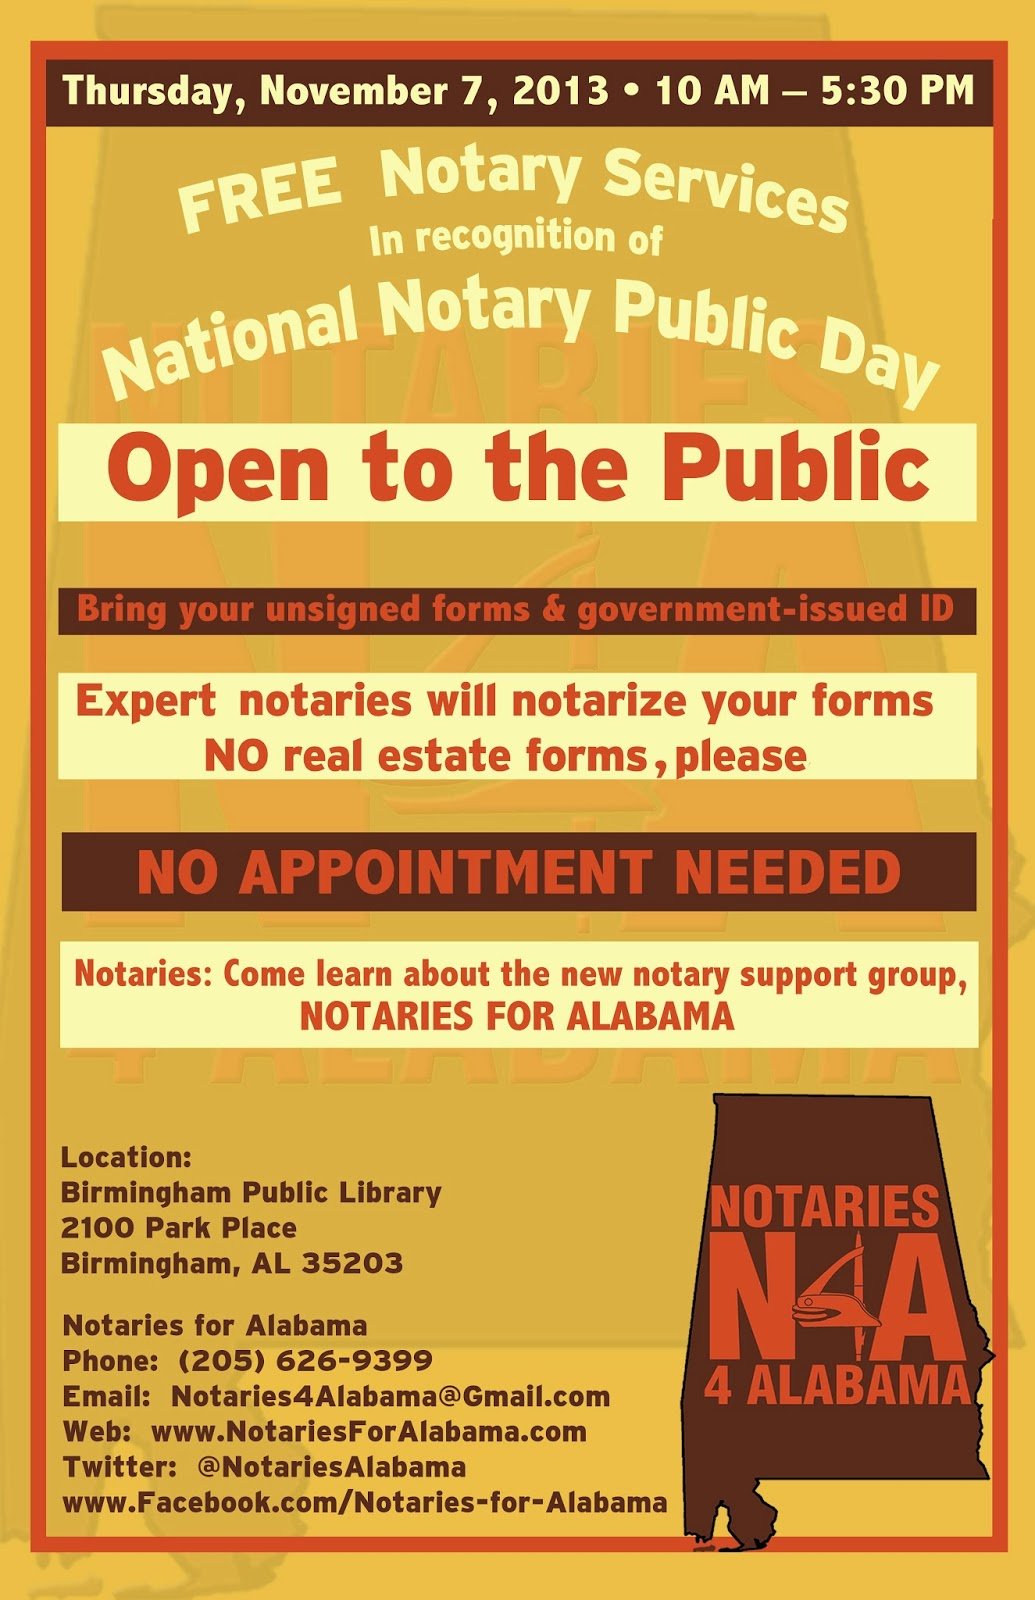 Alabama Secretary Of State Jim Bennett To Attend National Notary Public Day  At Central Library, As Part Of The Application